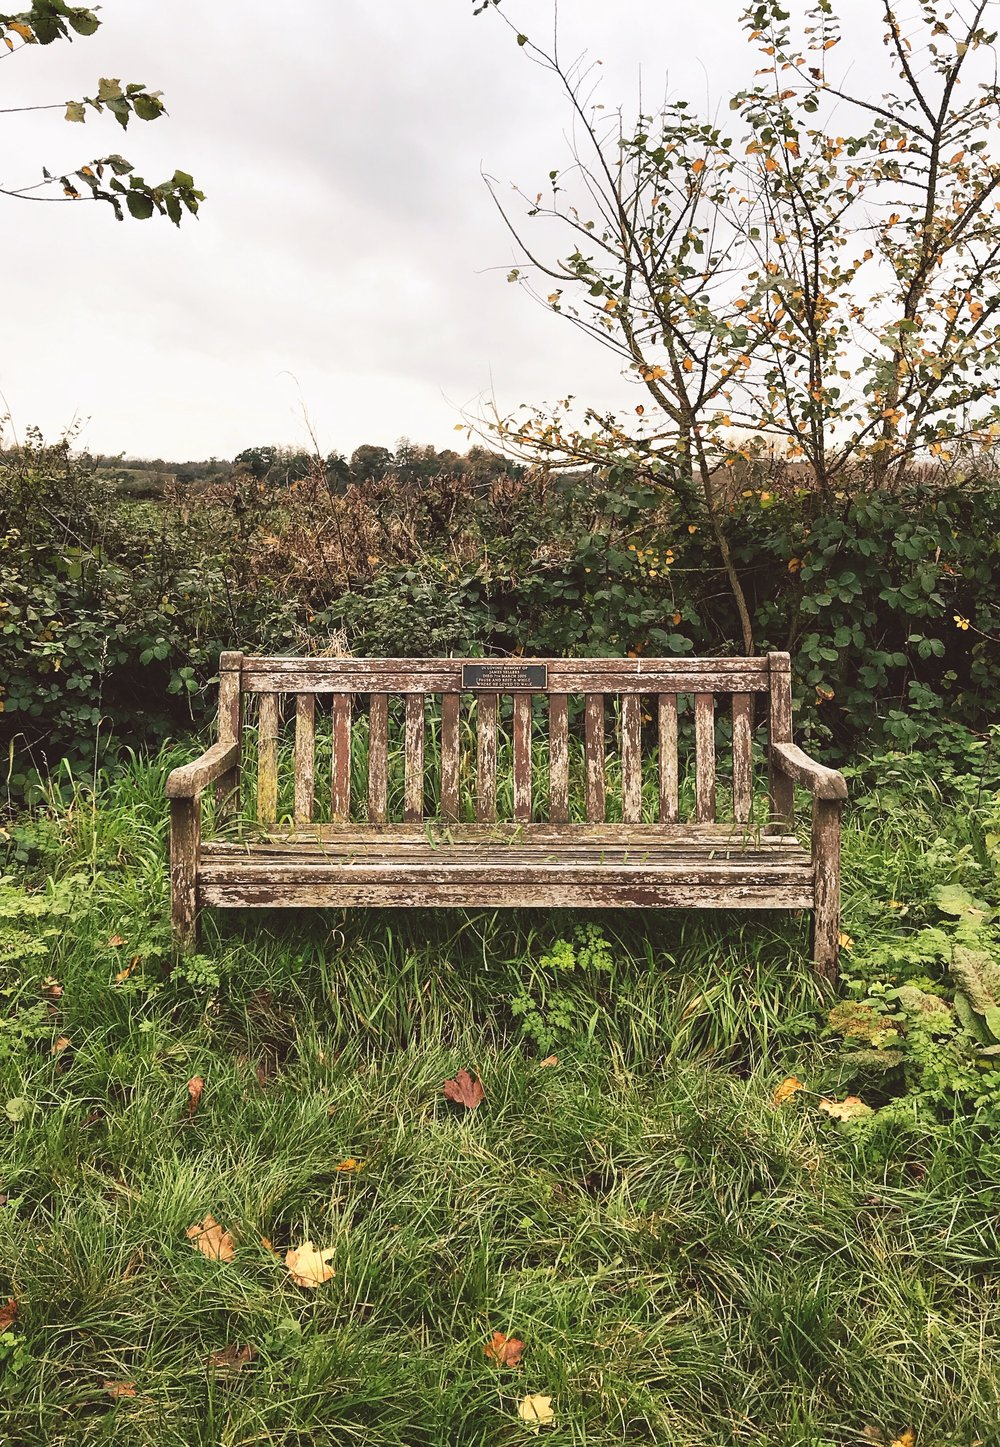 """Bench reads, """"IN LOVING MEMORY OF JAMES SELLERS. DIED 7TH MARCH 2005. PAUSE AND REST A WHILE, WHERE HE LOVED TO WALK."""""""